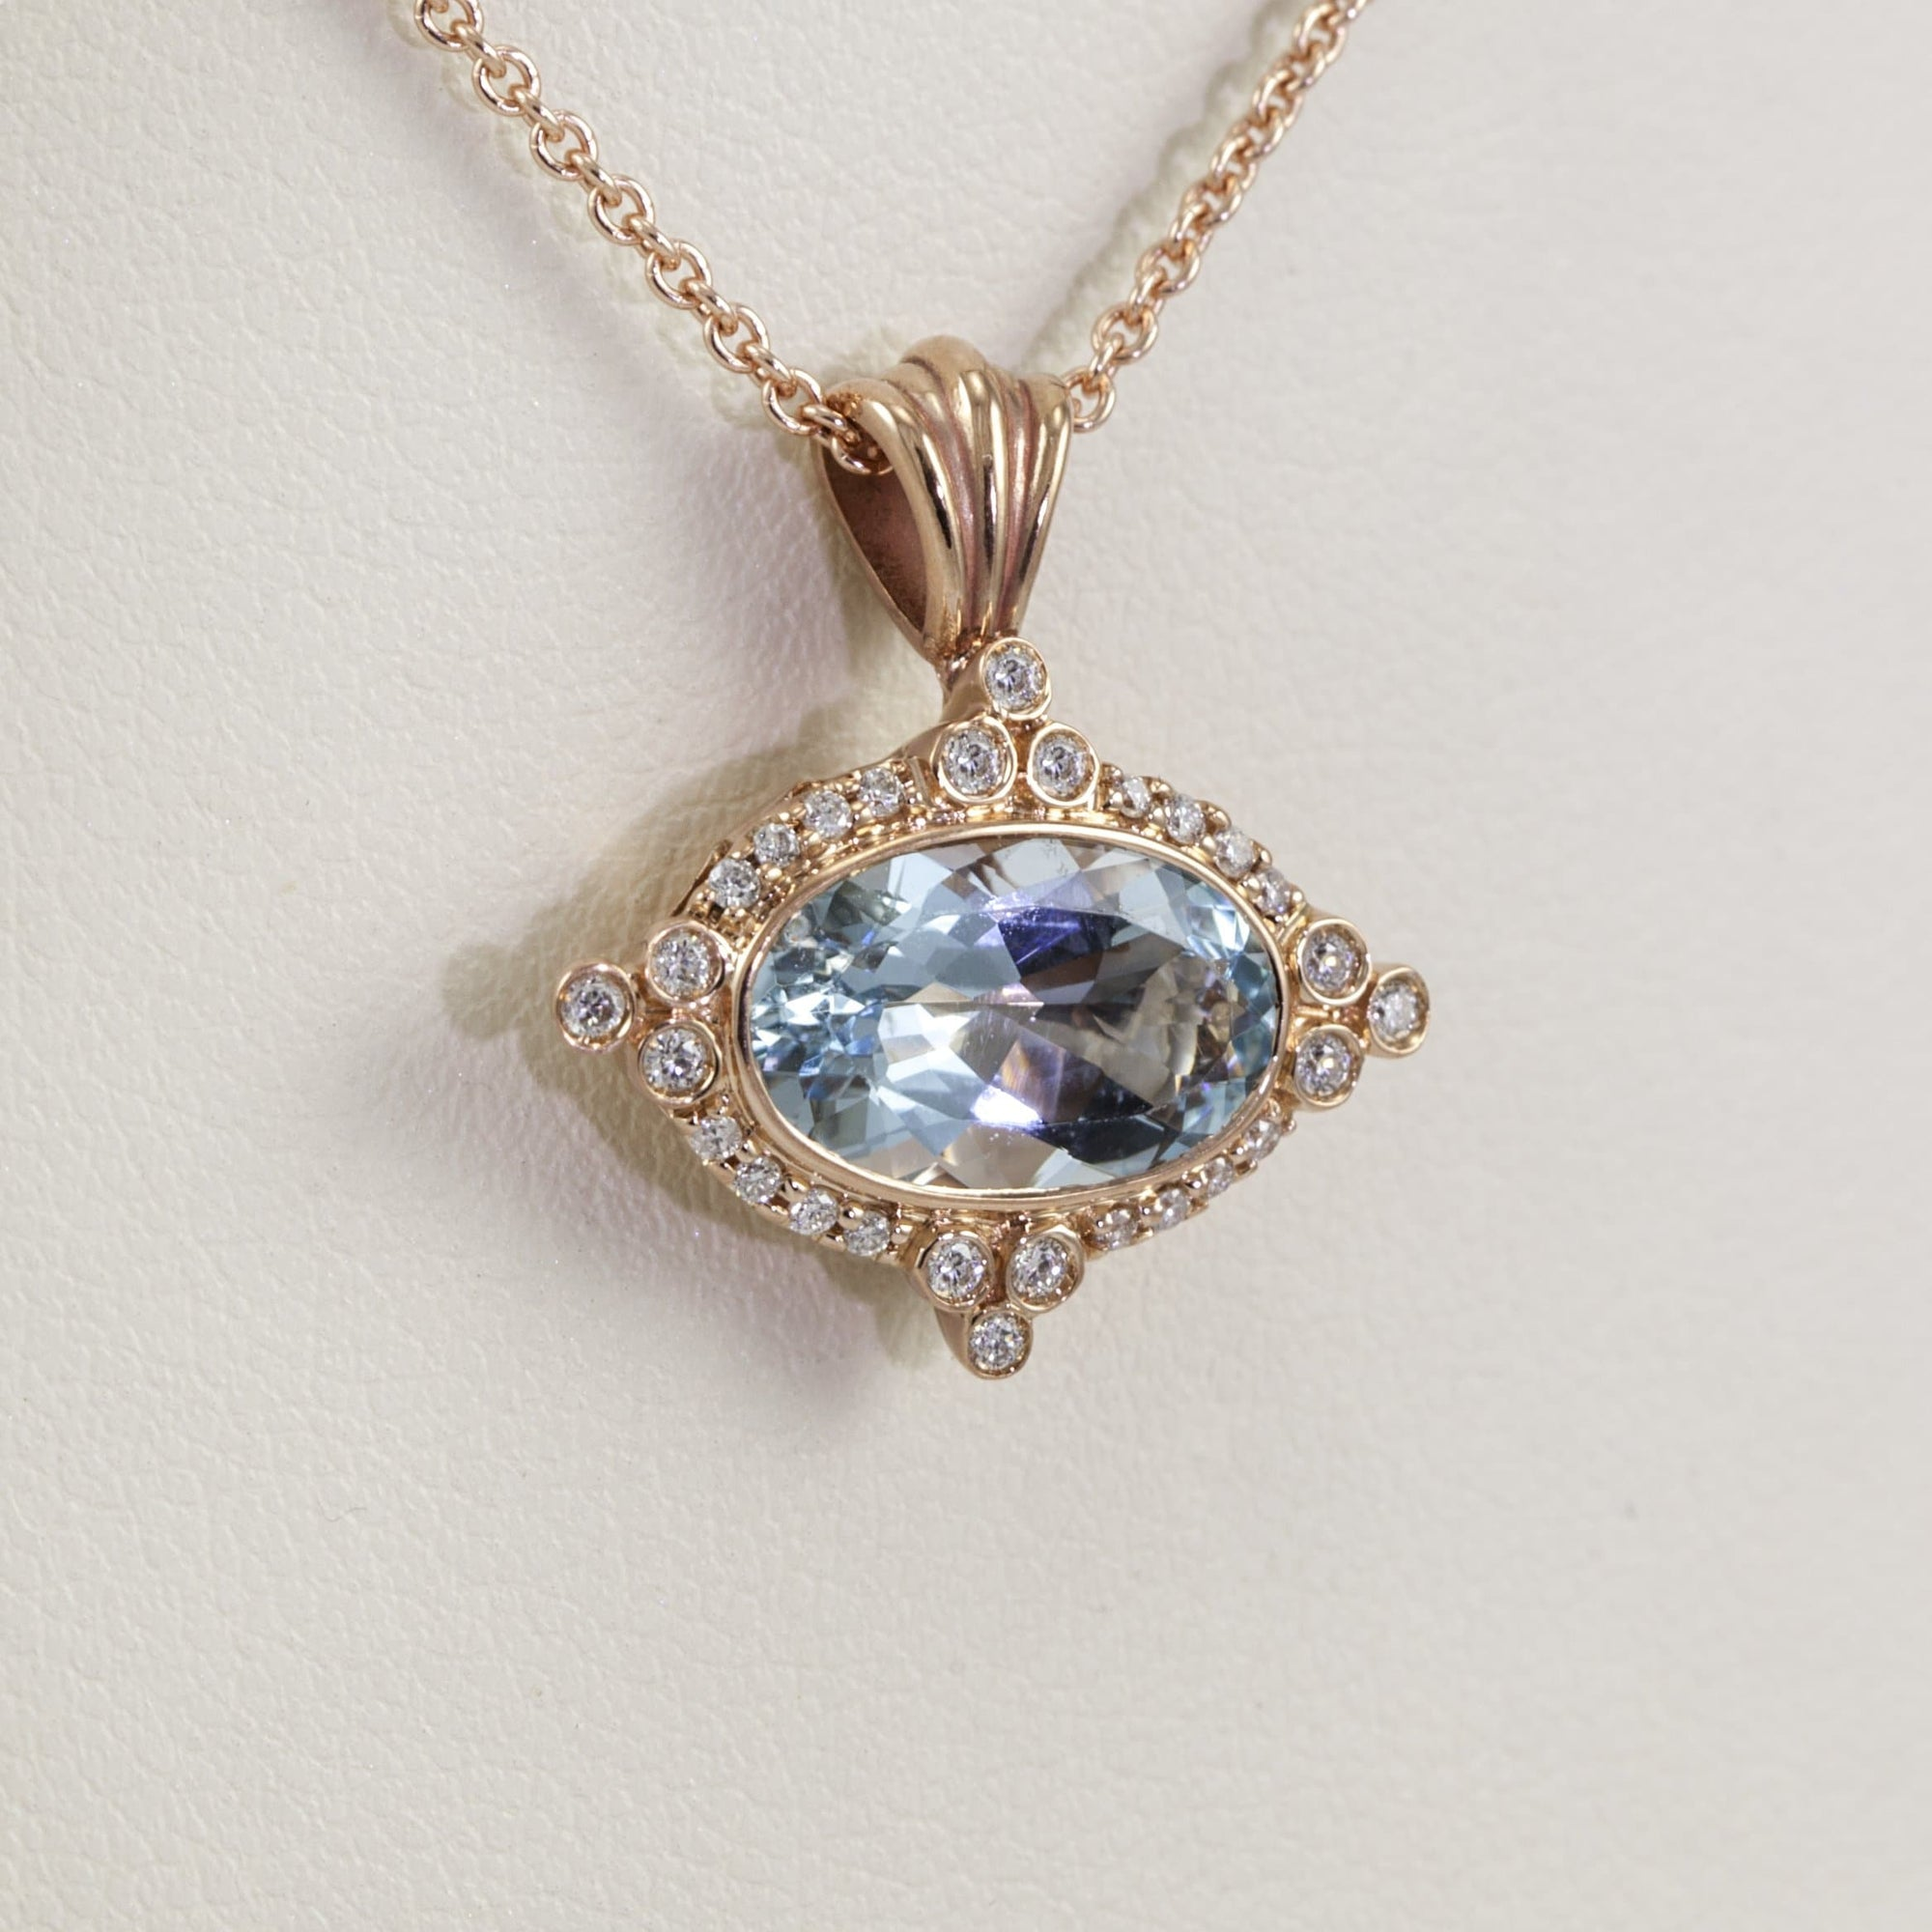 18K Rose Gold East-West Design Step-Cut Aquamarine and Diamond Halo Necklace, 18 Inches